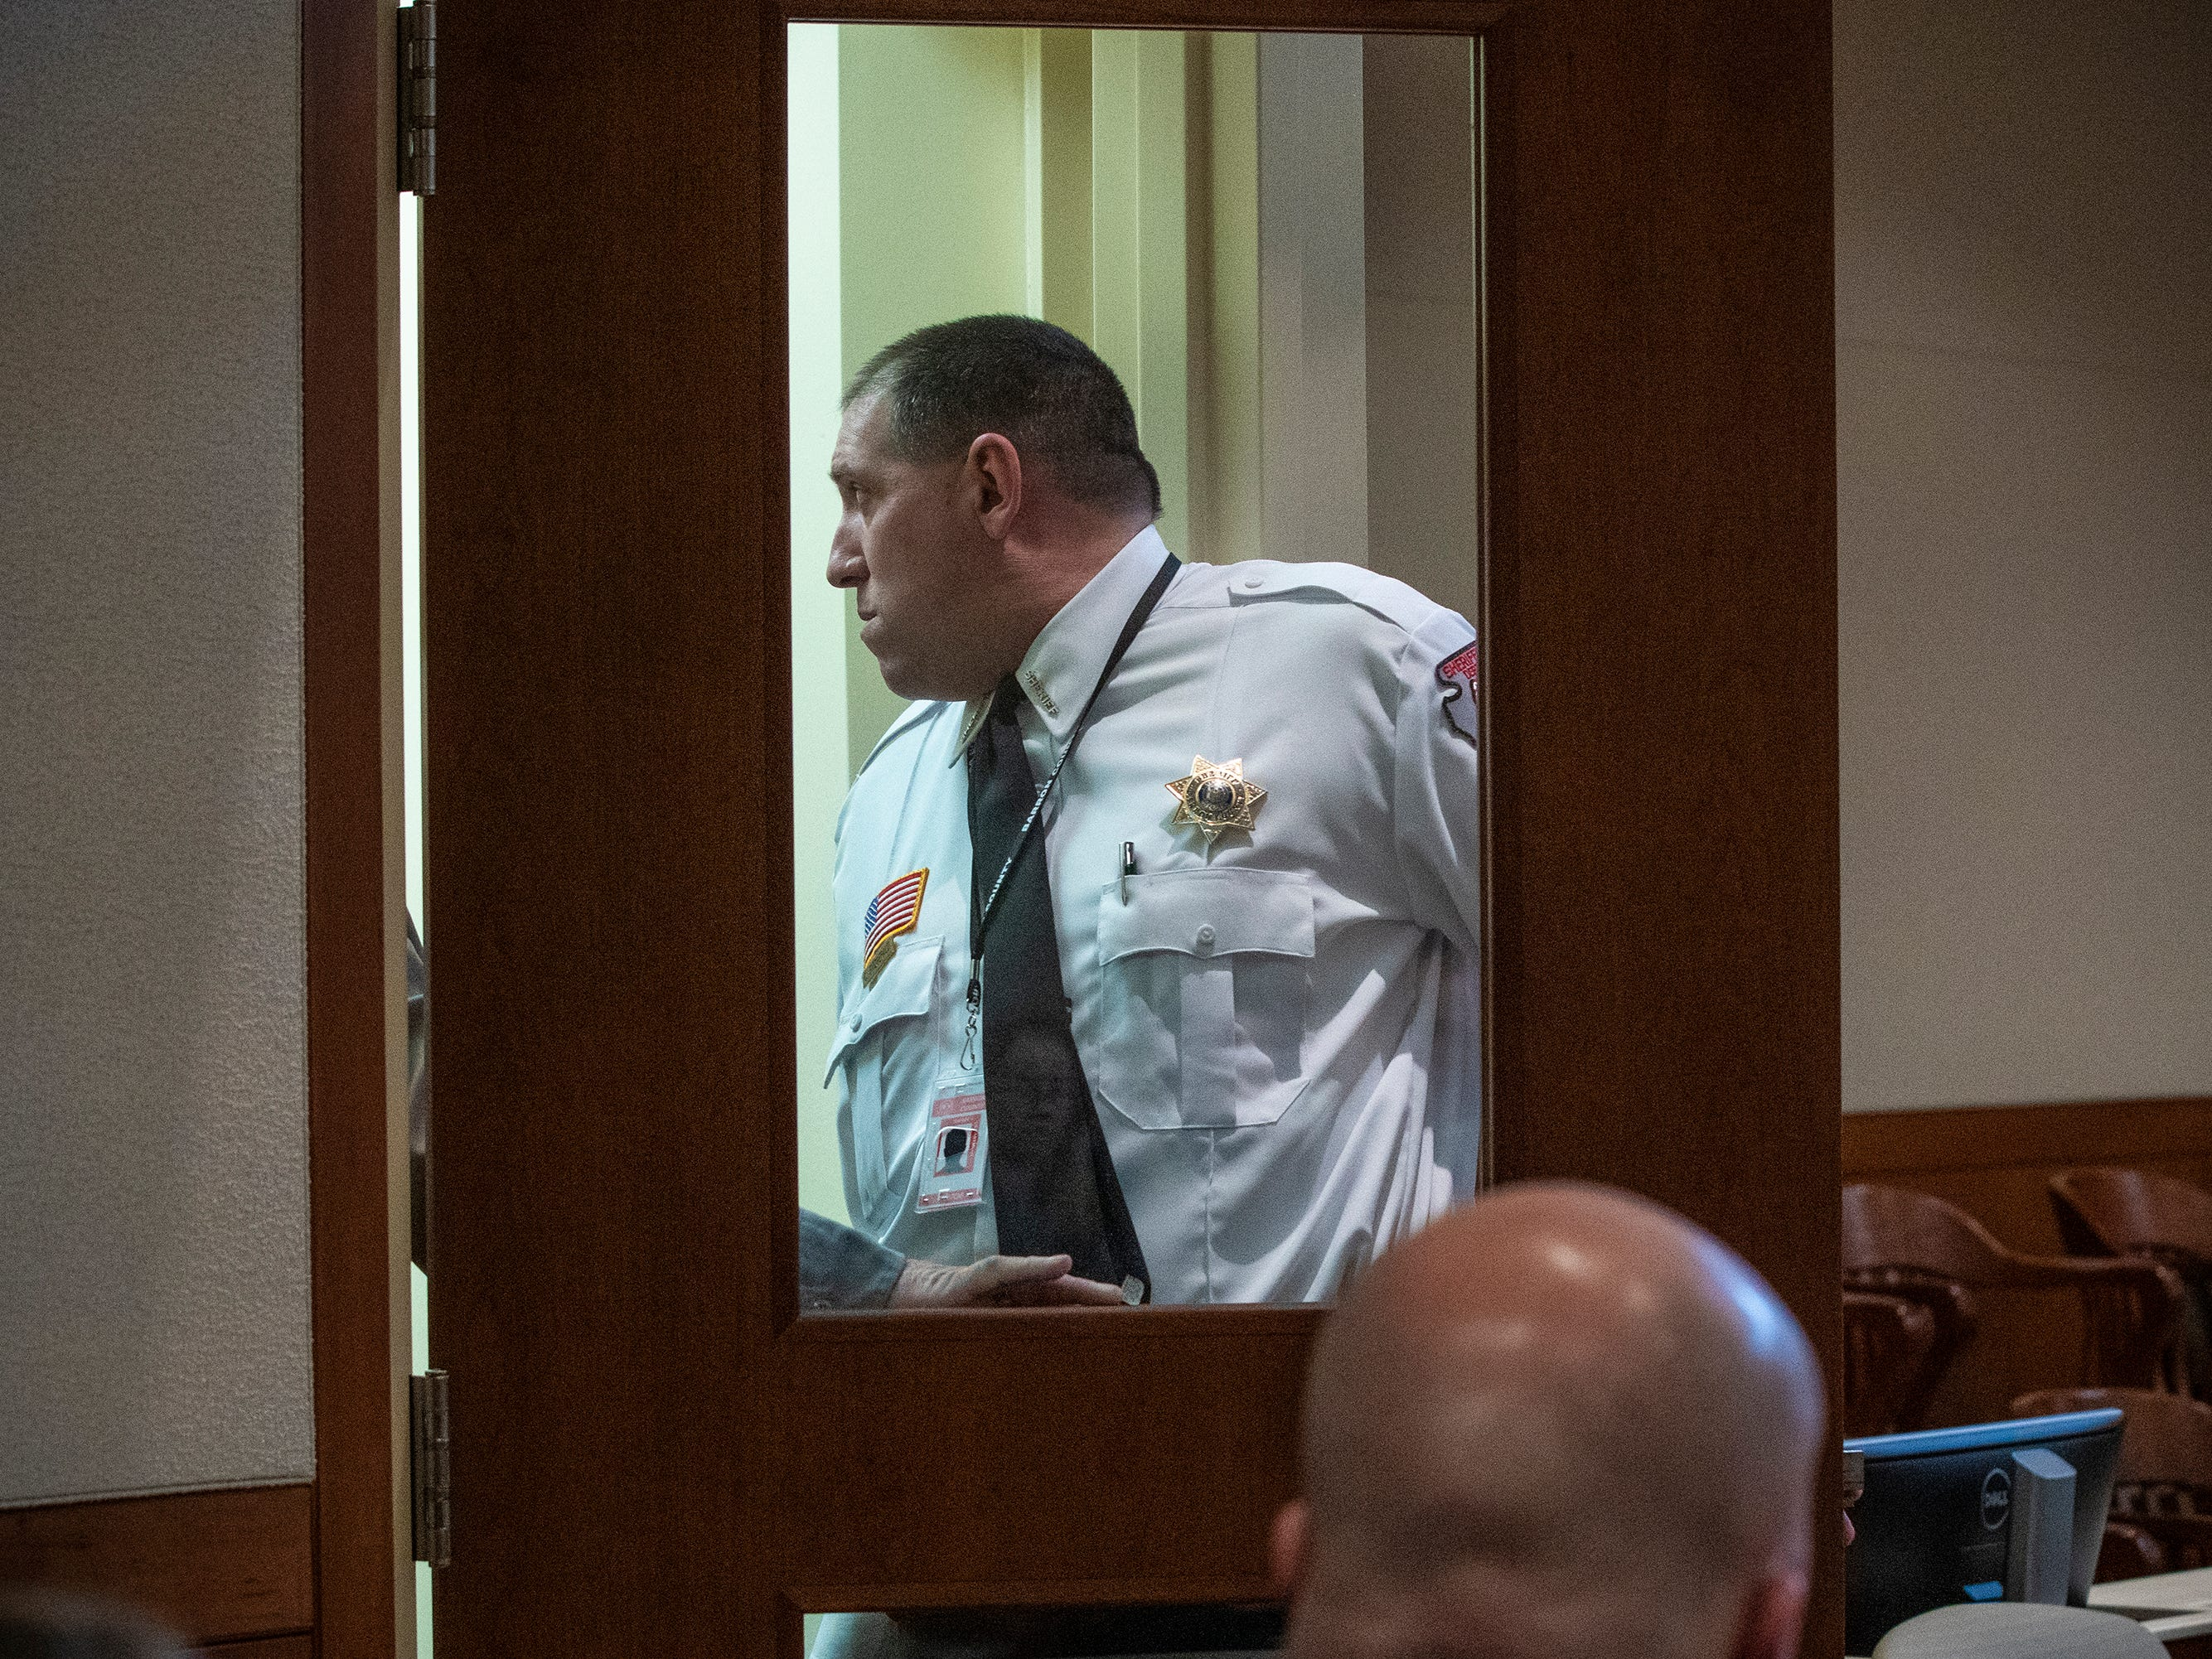 Barron County Sheriff Chris Fitzgerald checks the entrance where Jake Patterson will be escorted to his preliminary hearing Wednesday, Feb. 6, 2019, at Barron County Circuit Court in Barron, Wis. Patterson is accused of kidnapping 13-year-old Jayme Closs and killing her parents, James and Denise Closs, at their home on  Oct. 15.